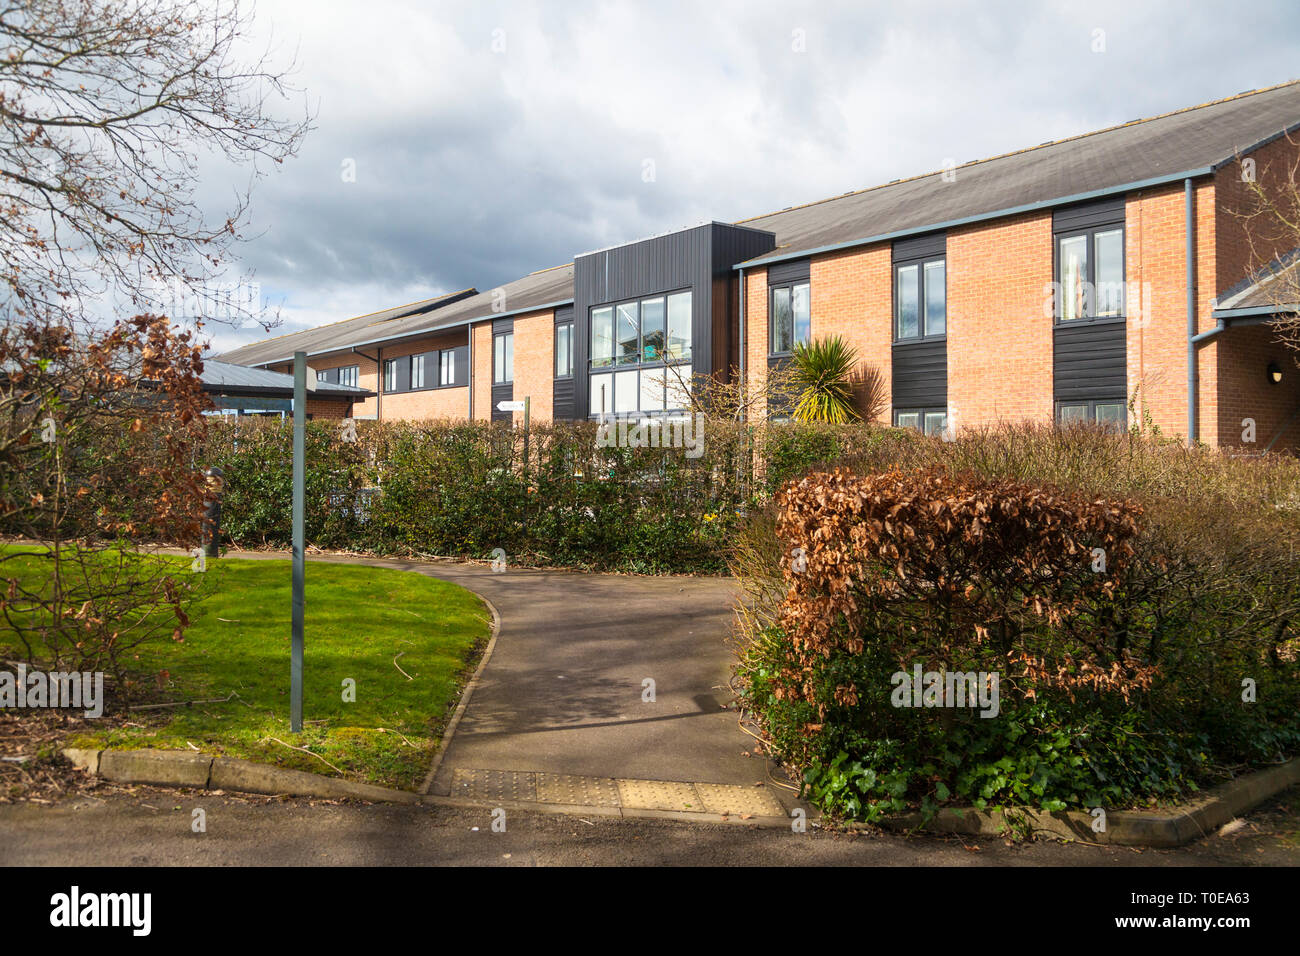 NHS west view, integrated care centre, tenterden, kent, uk - Stock Image